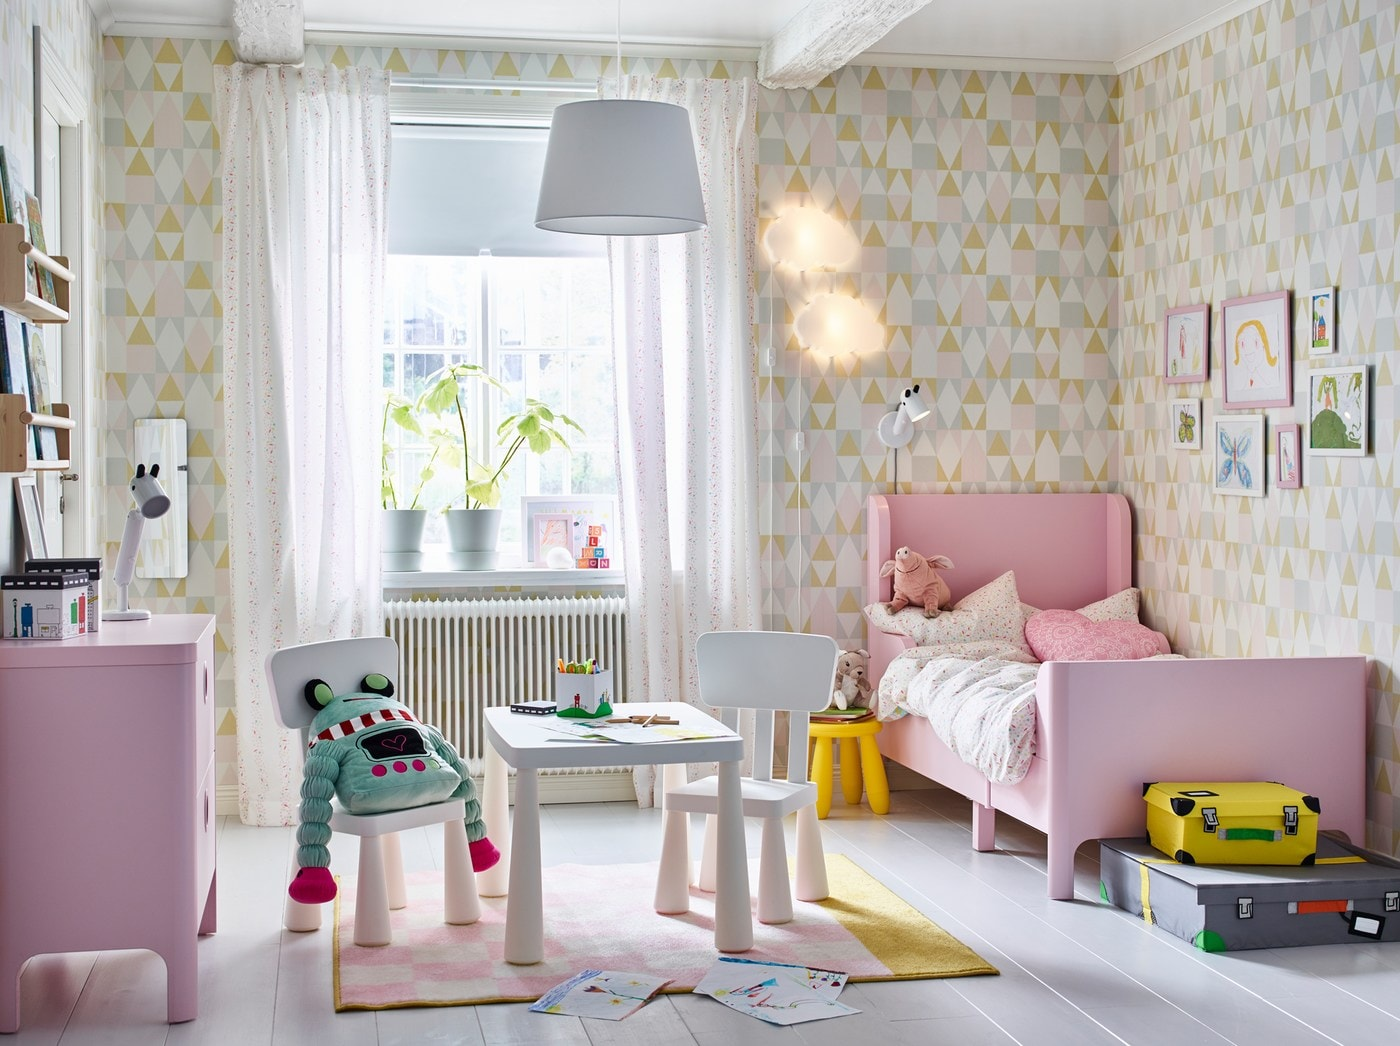 A children's bedroom with patterned wallpaper in muted tones has a pink extendable BUSUNGE bed and a table with chairs.